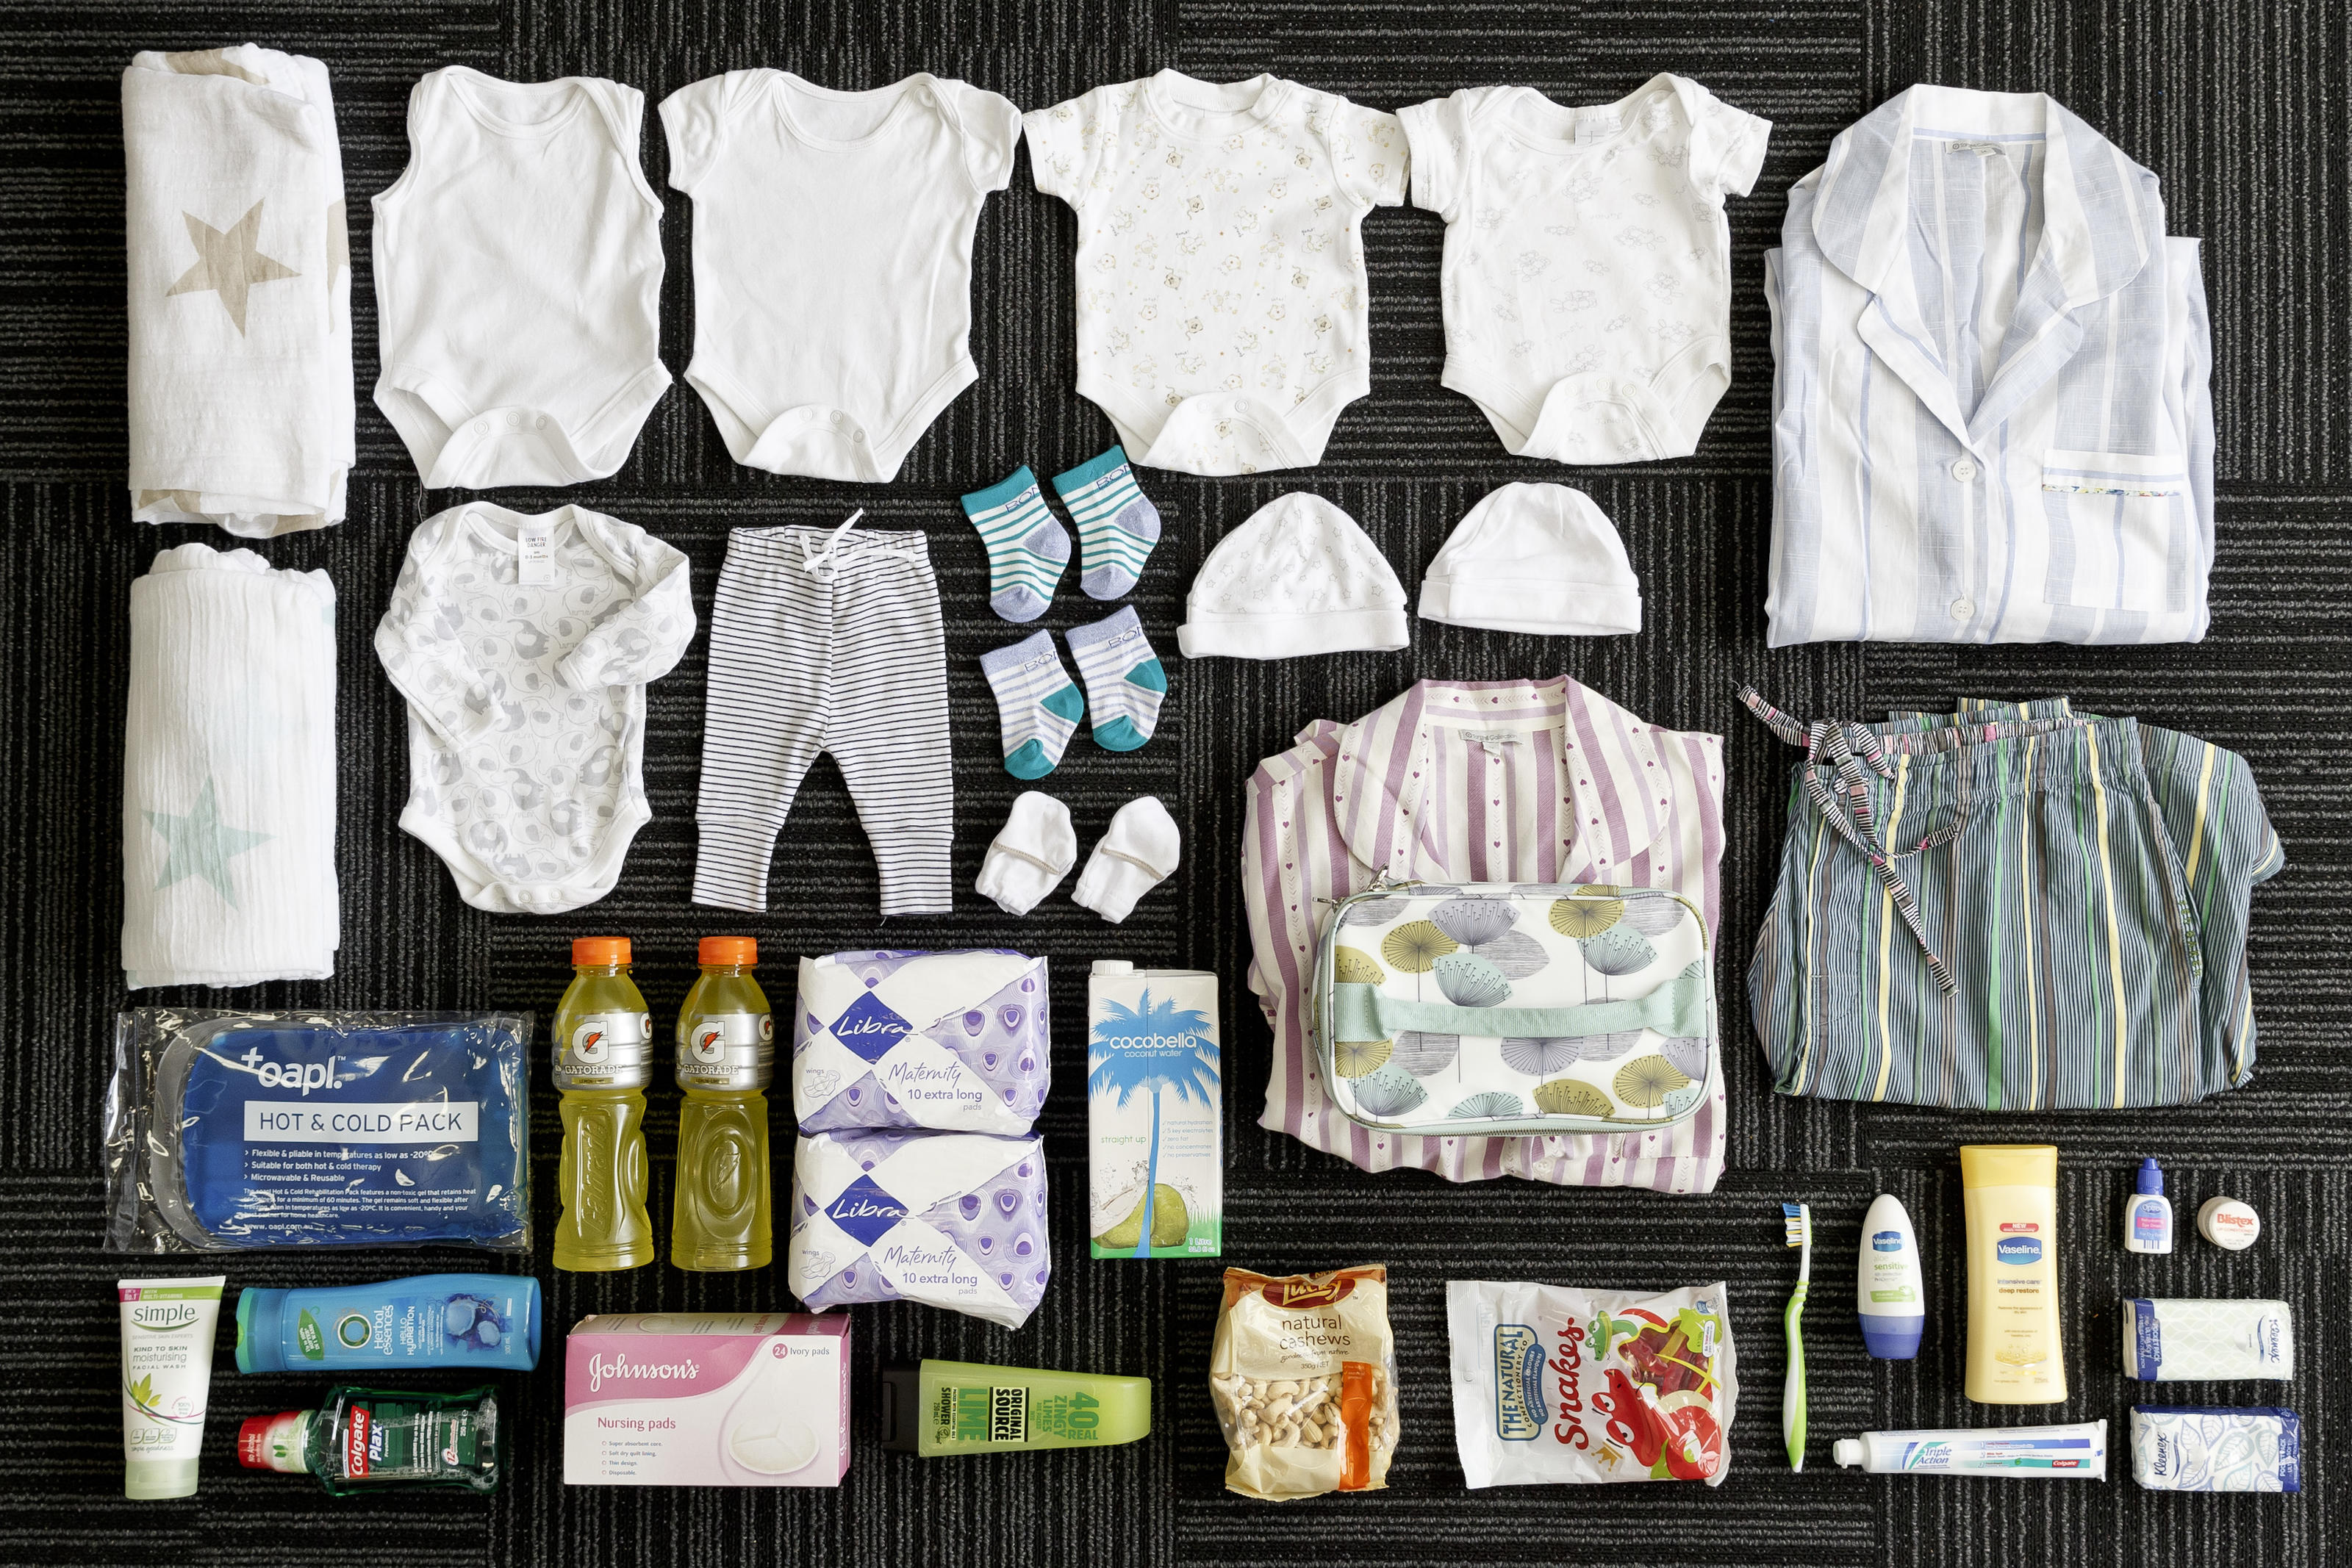 Katy Shaw's, 31, maternity bags contents: toileteries, snacks, nappies, het, socks, mittens, clothes and swaddles for the baby, clothes for her, night dresses, maternity underwear, maternity pads nursing pads, massage oils. Melbourne, Australia, 2015.